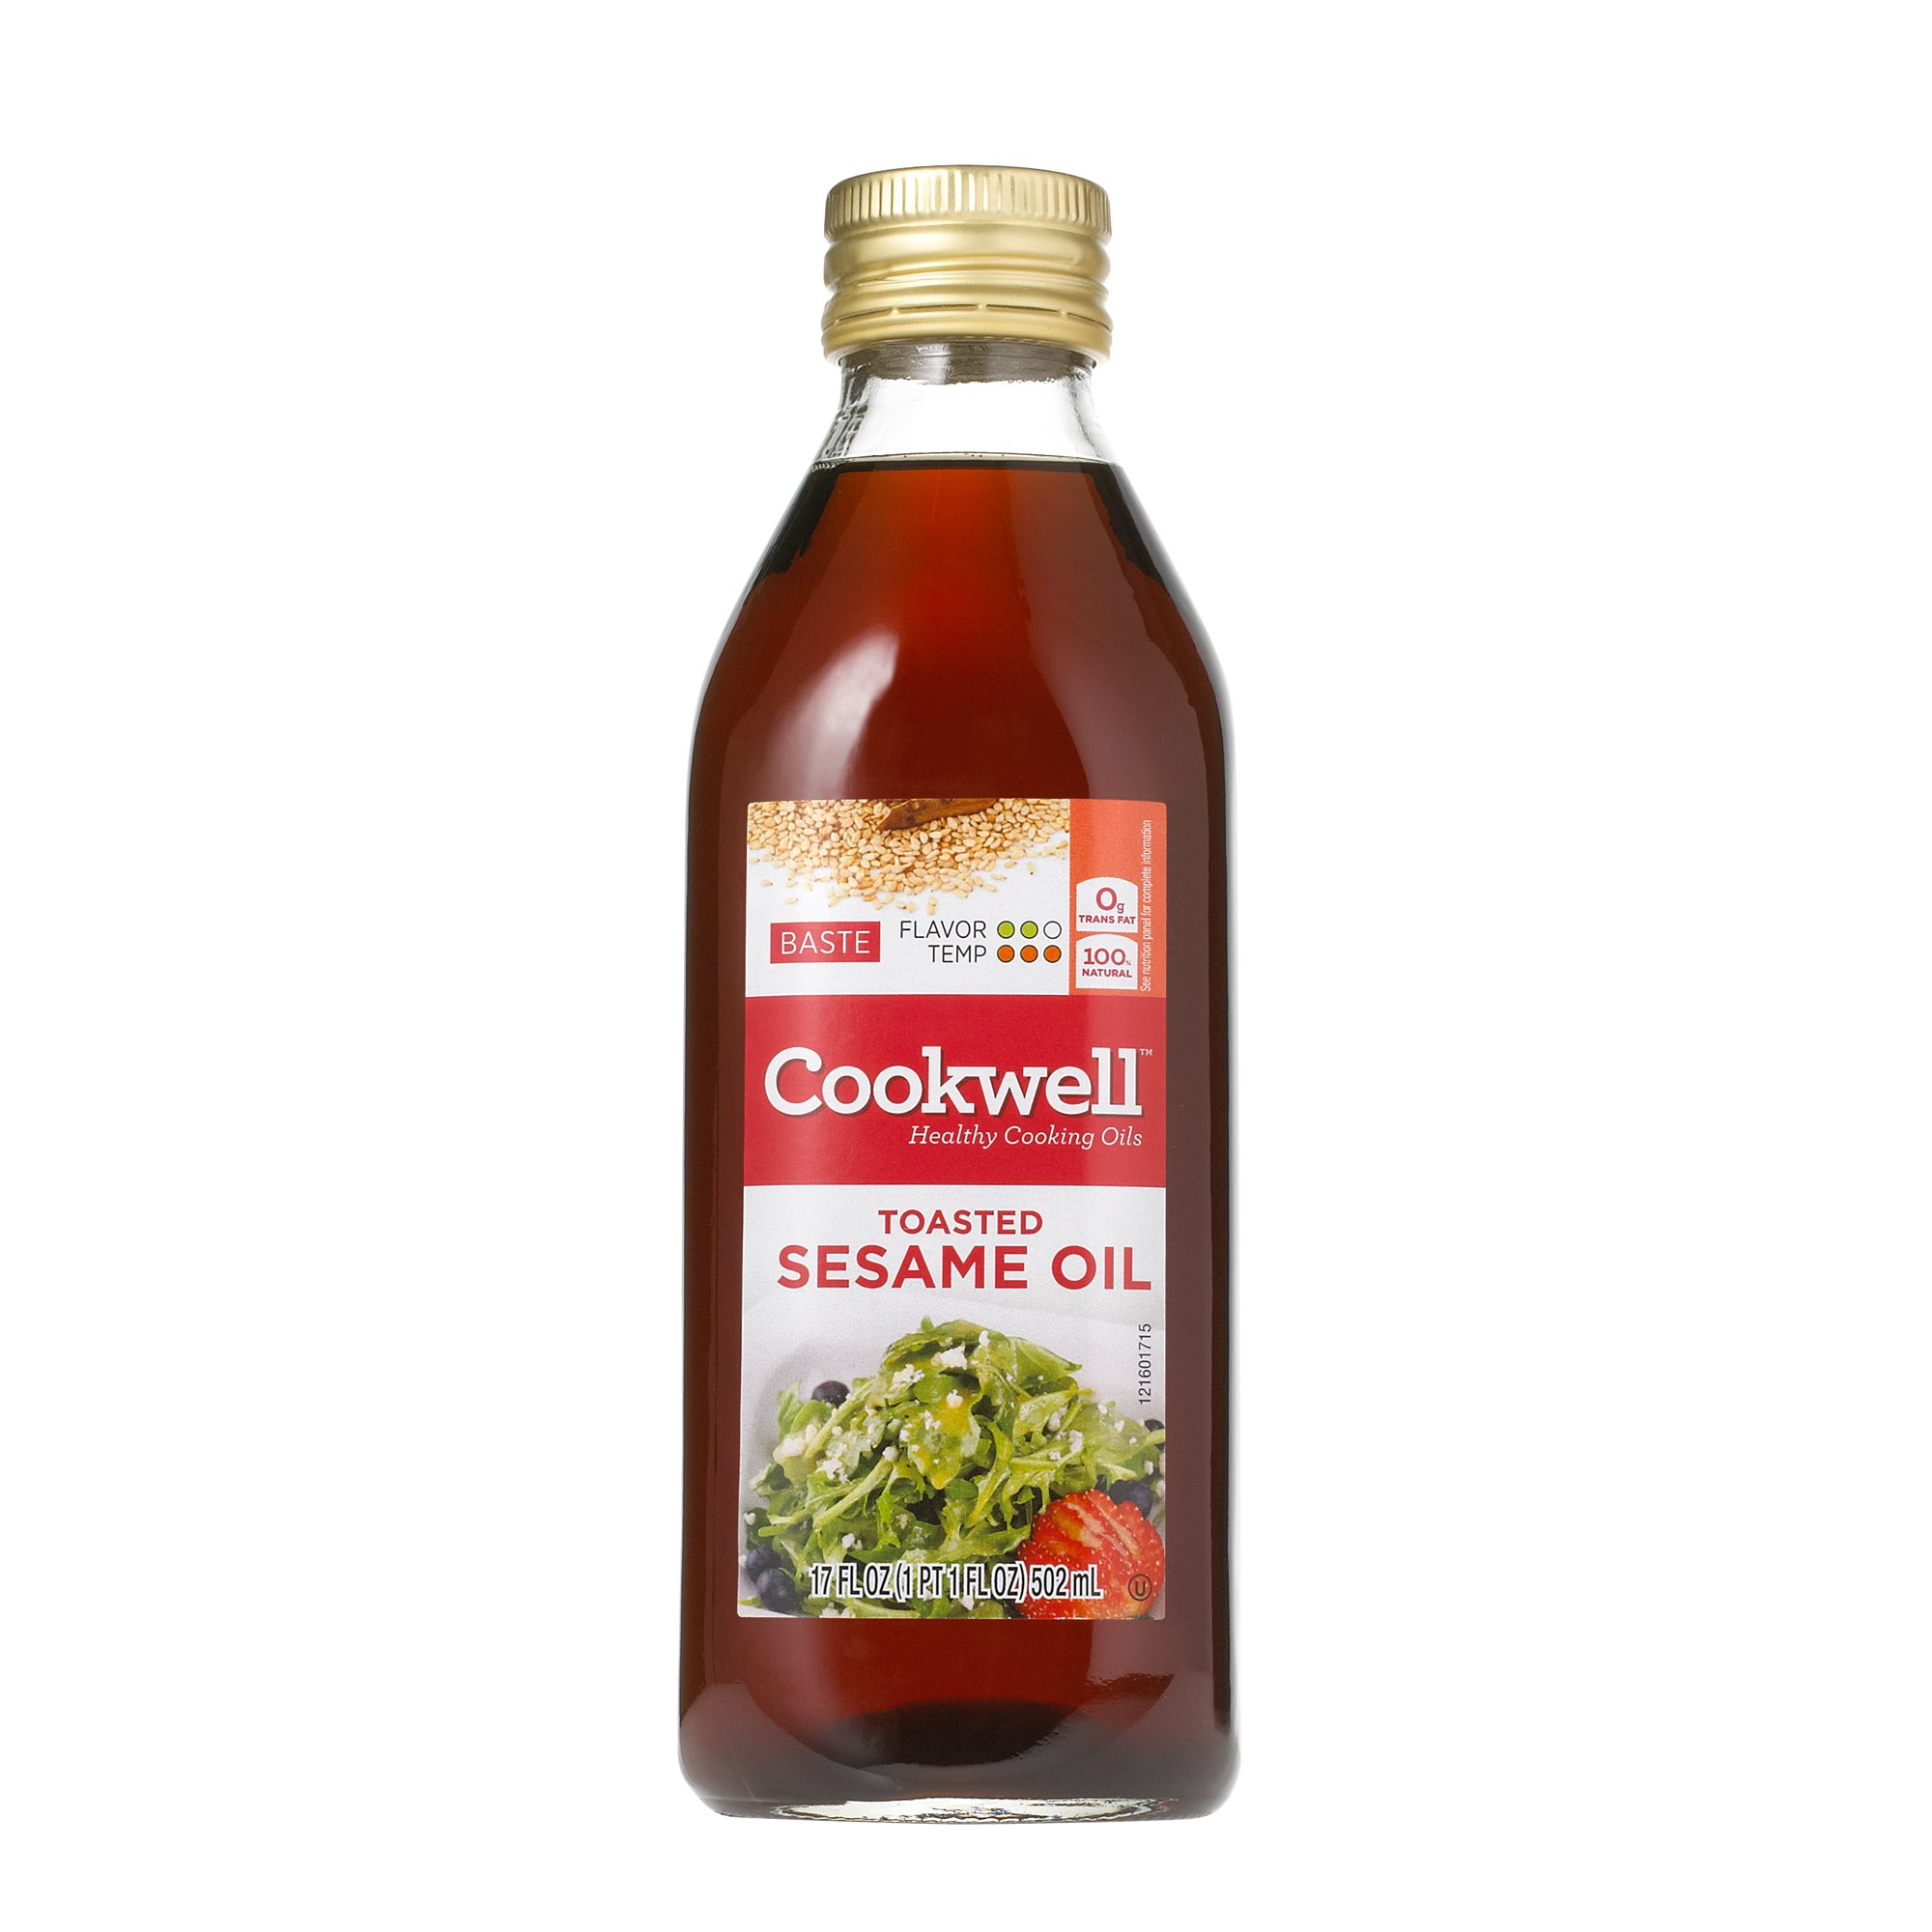 Cookwell Toasted Sesame Oil Oil for Sauteing and Basting, 17 Oz